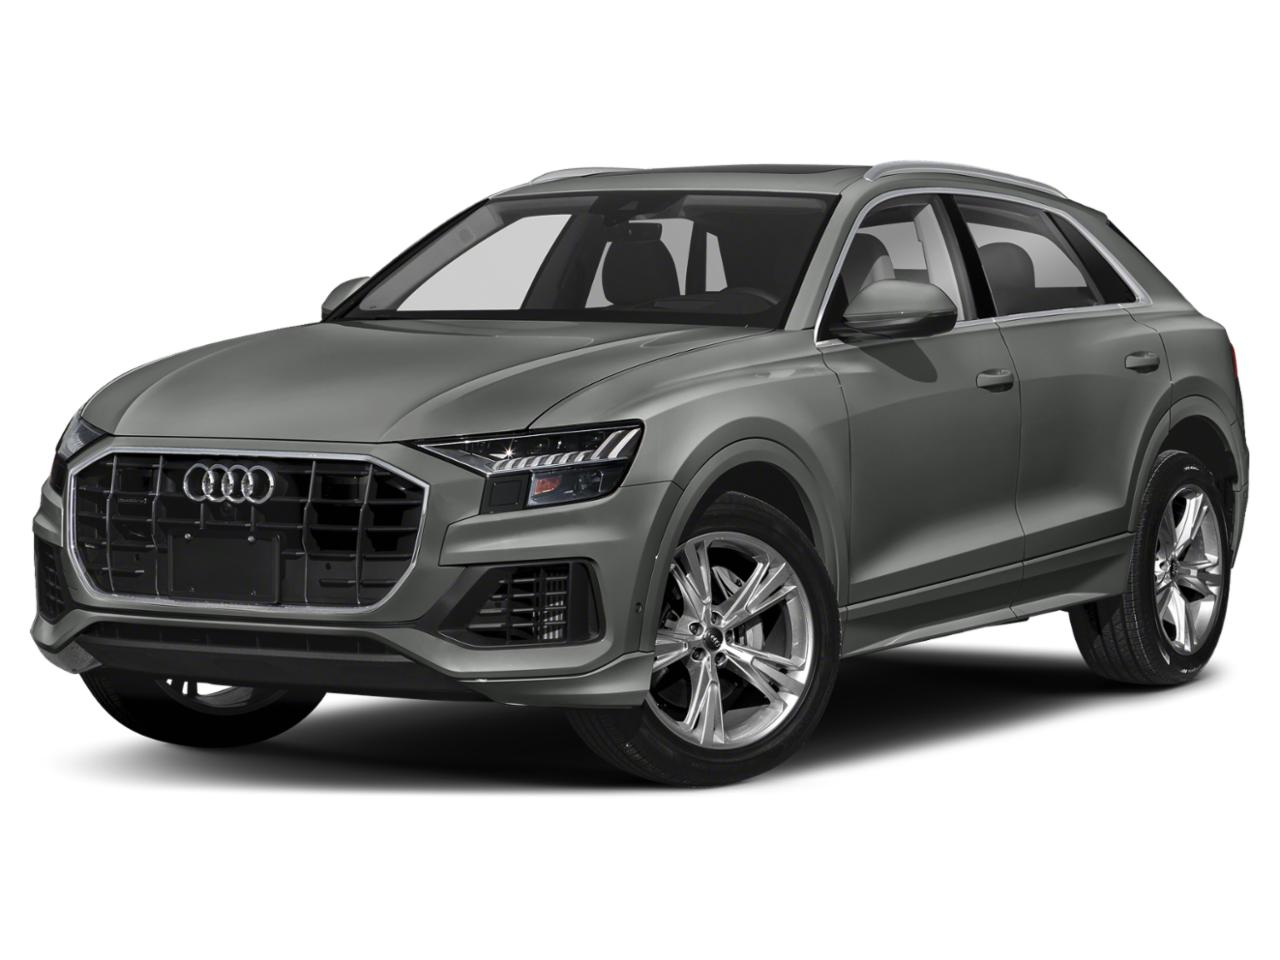 2021 Audi Q8 Vehicle Photo in McKinney, TX 75070